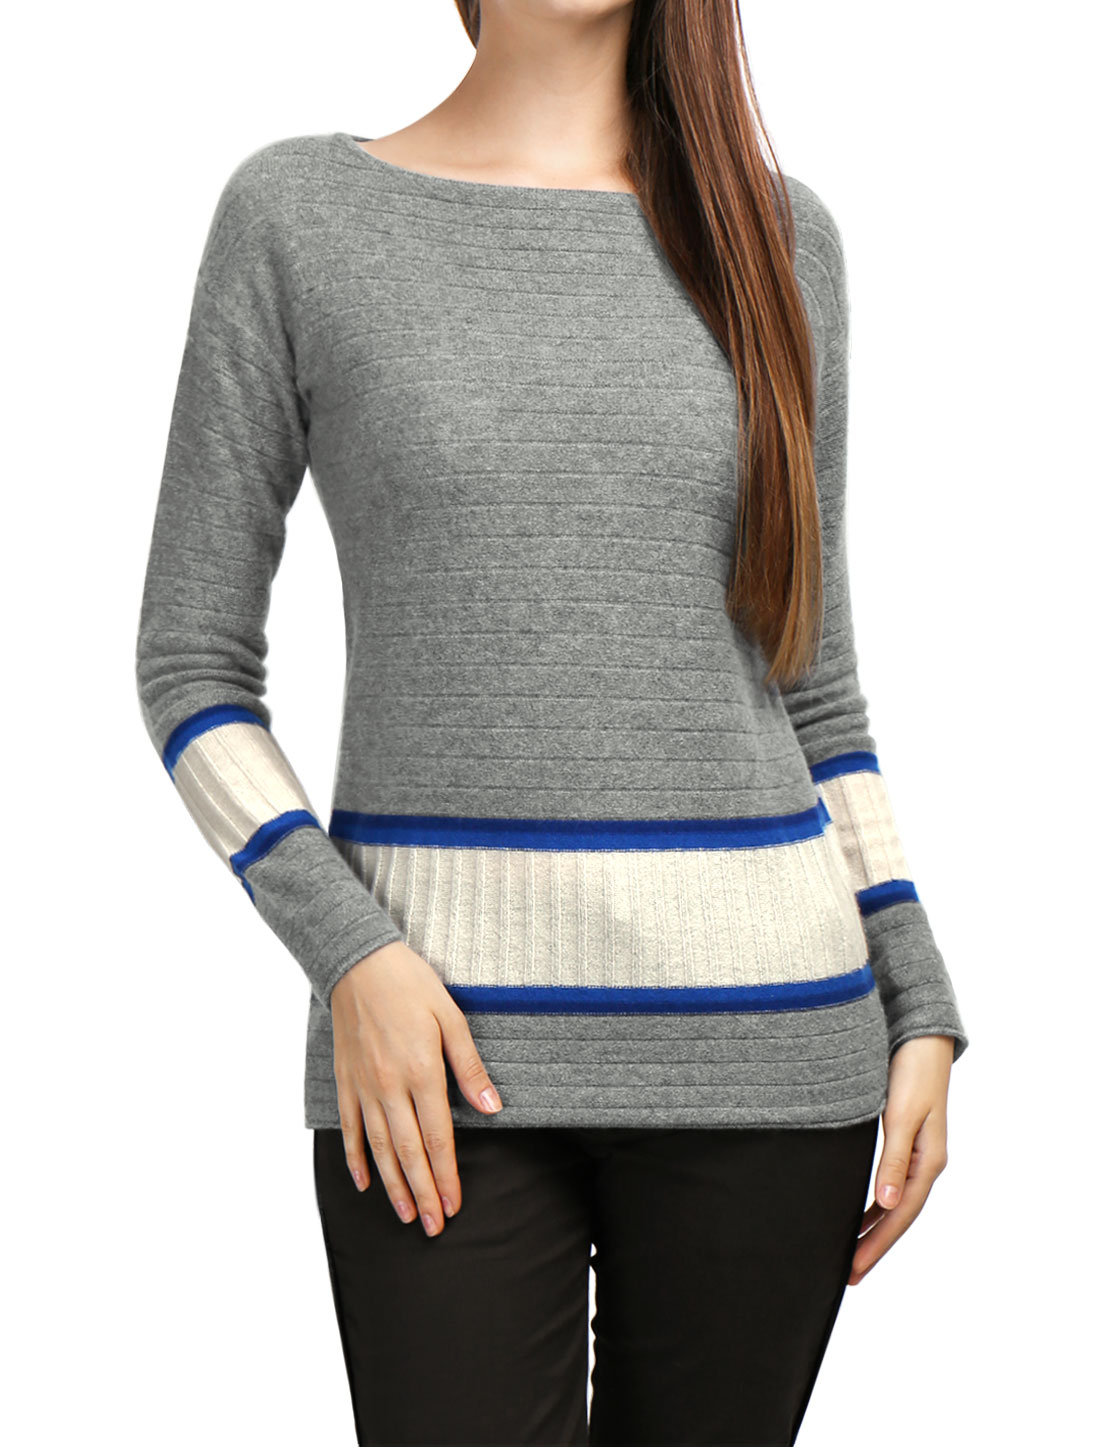 Women Boat Neck Jersey Contrast Rib Knit Cashmere Sweater Blue L